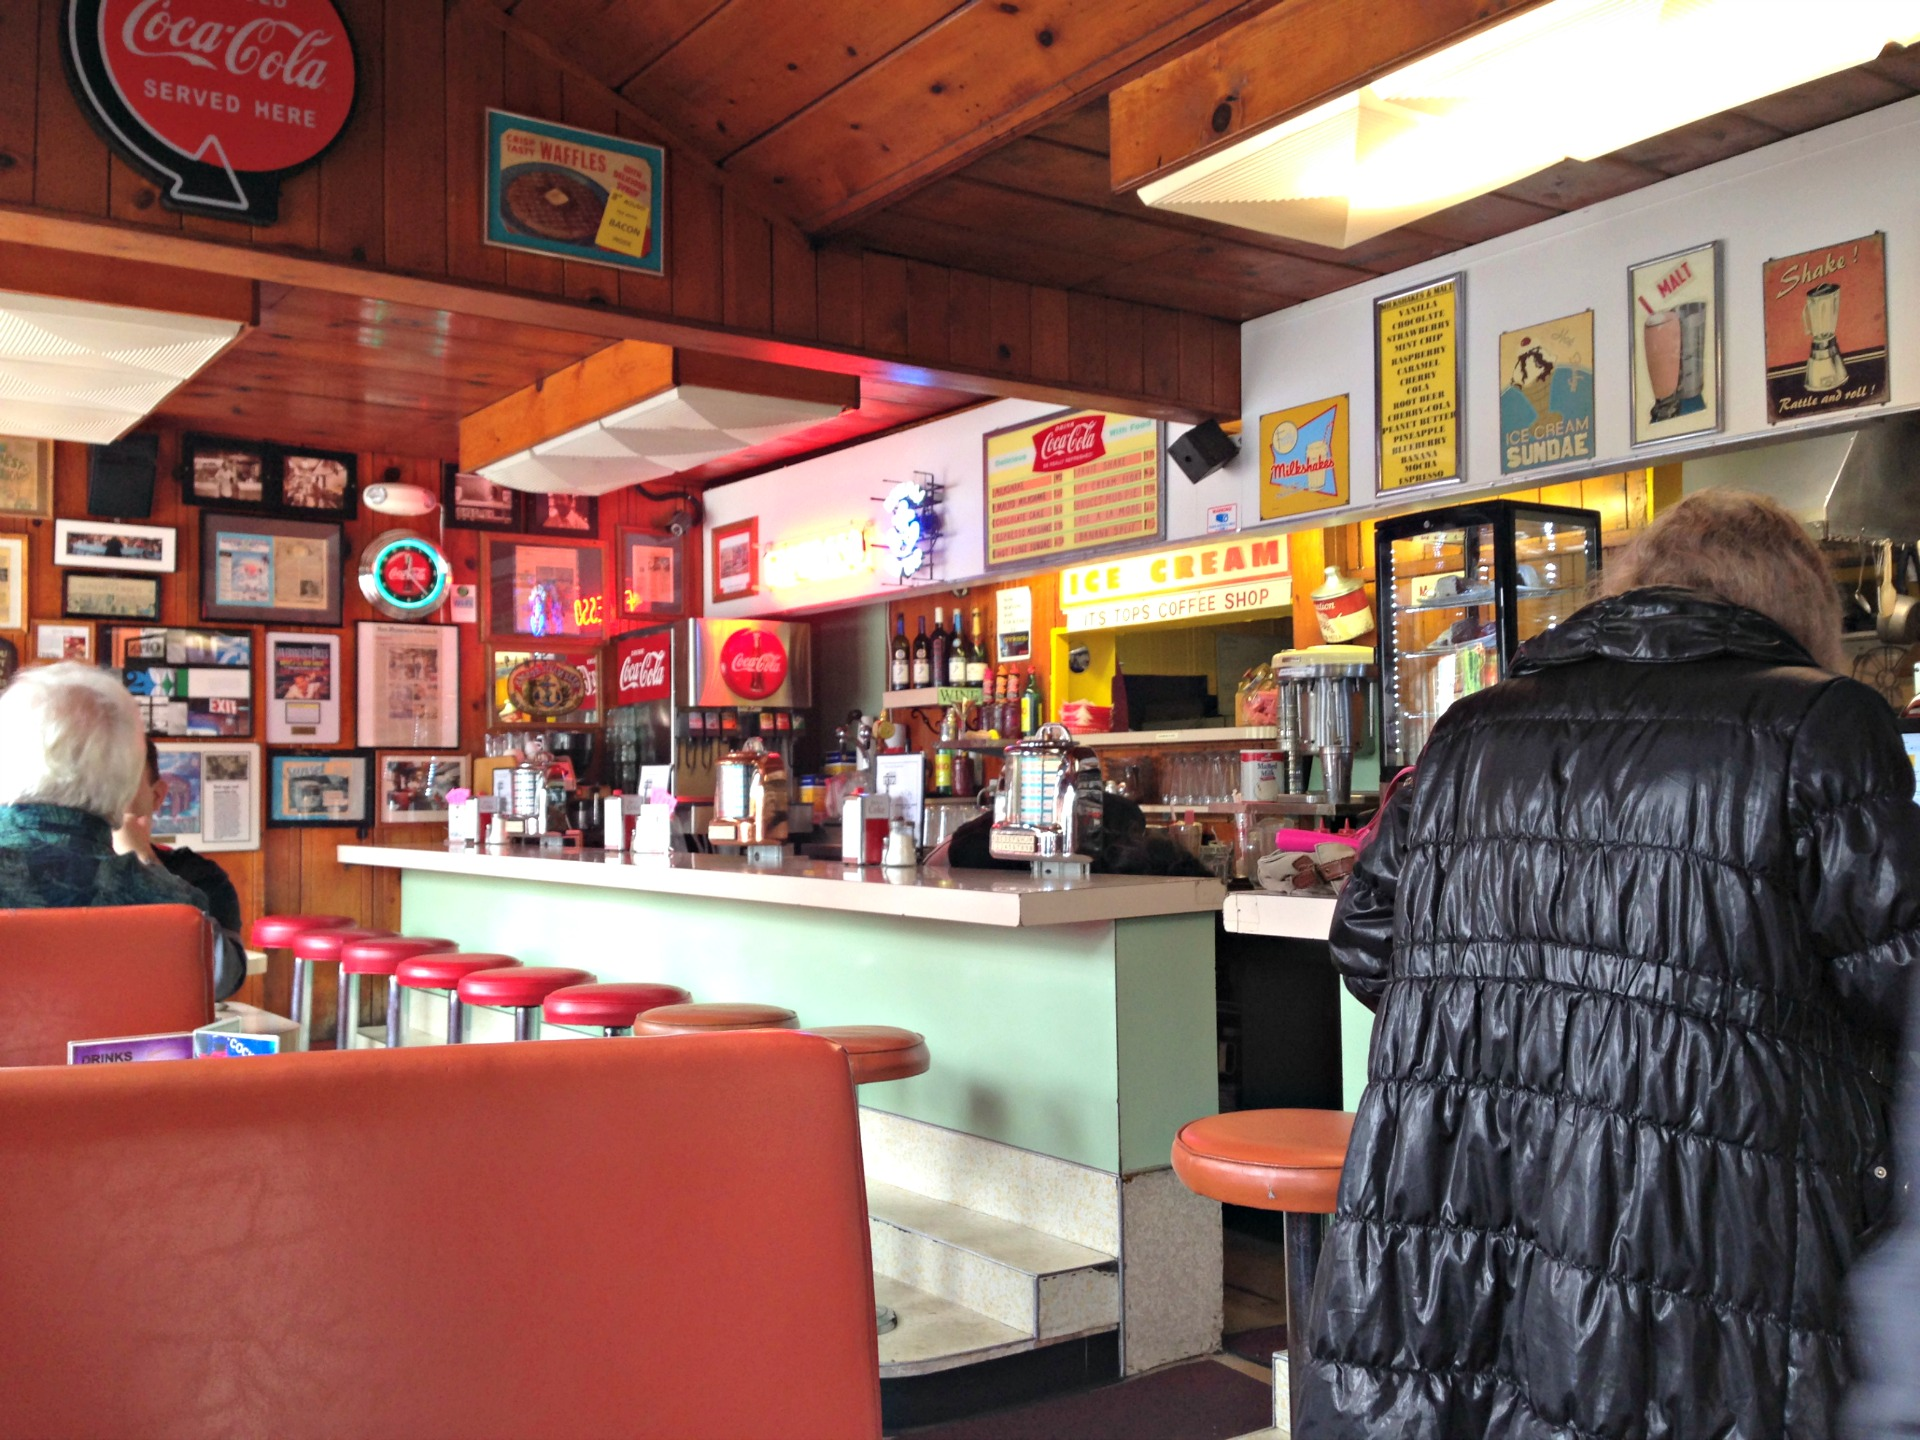 The retro interior of It's Tops Coffee Shop.